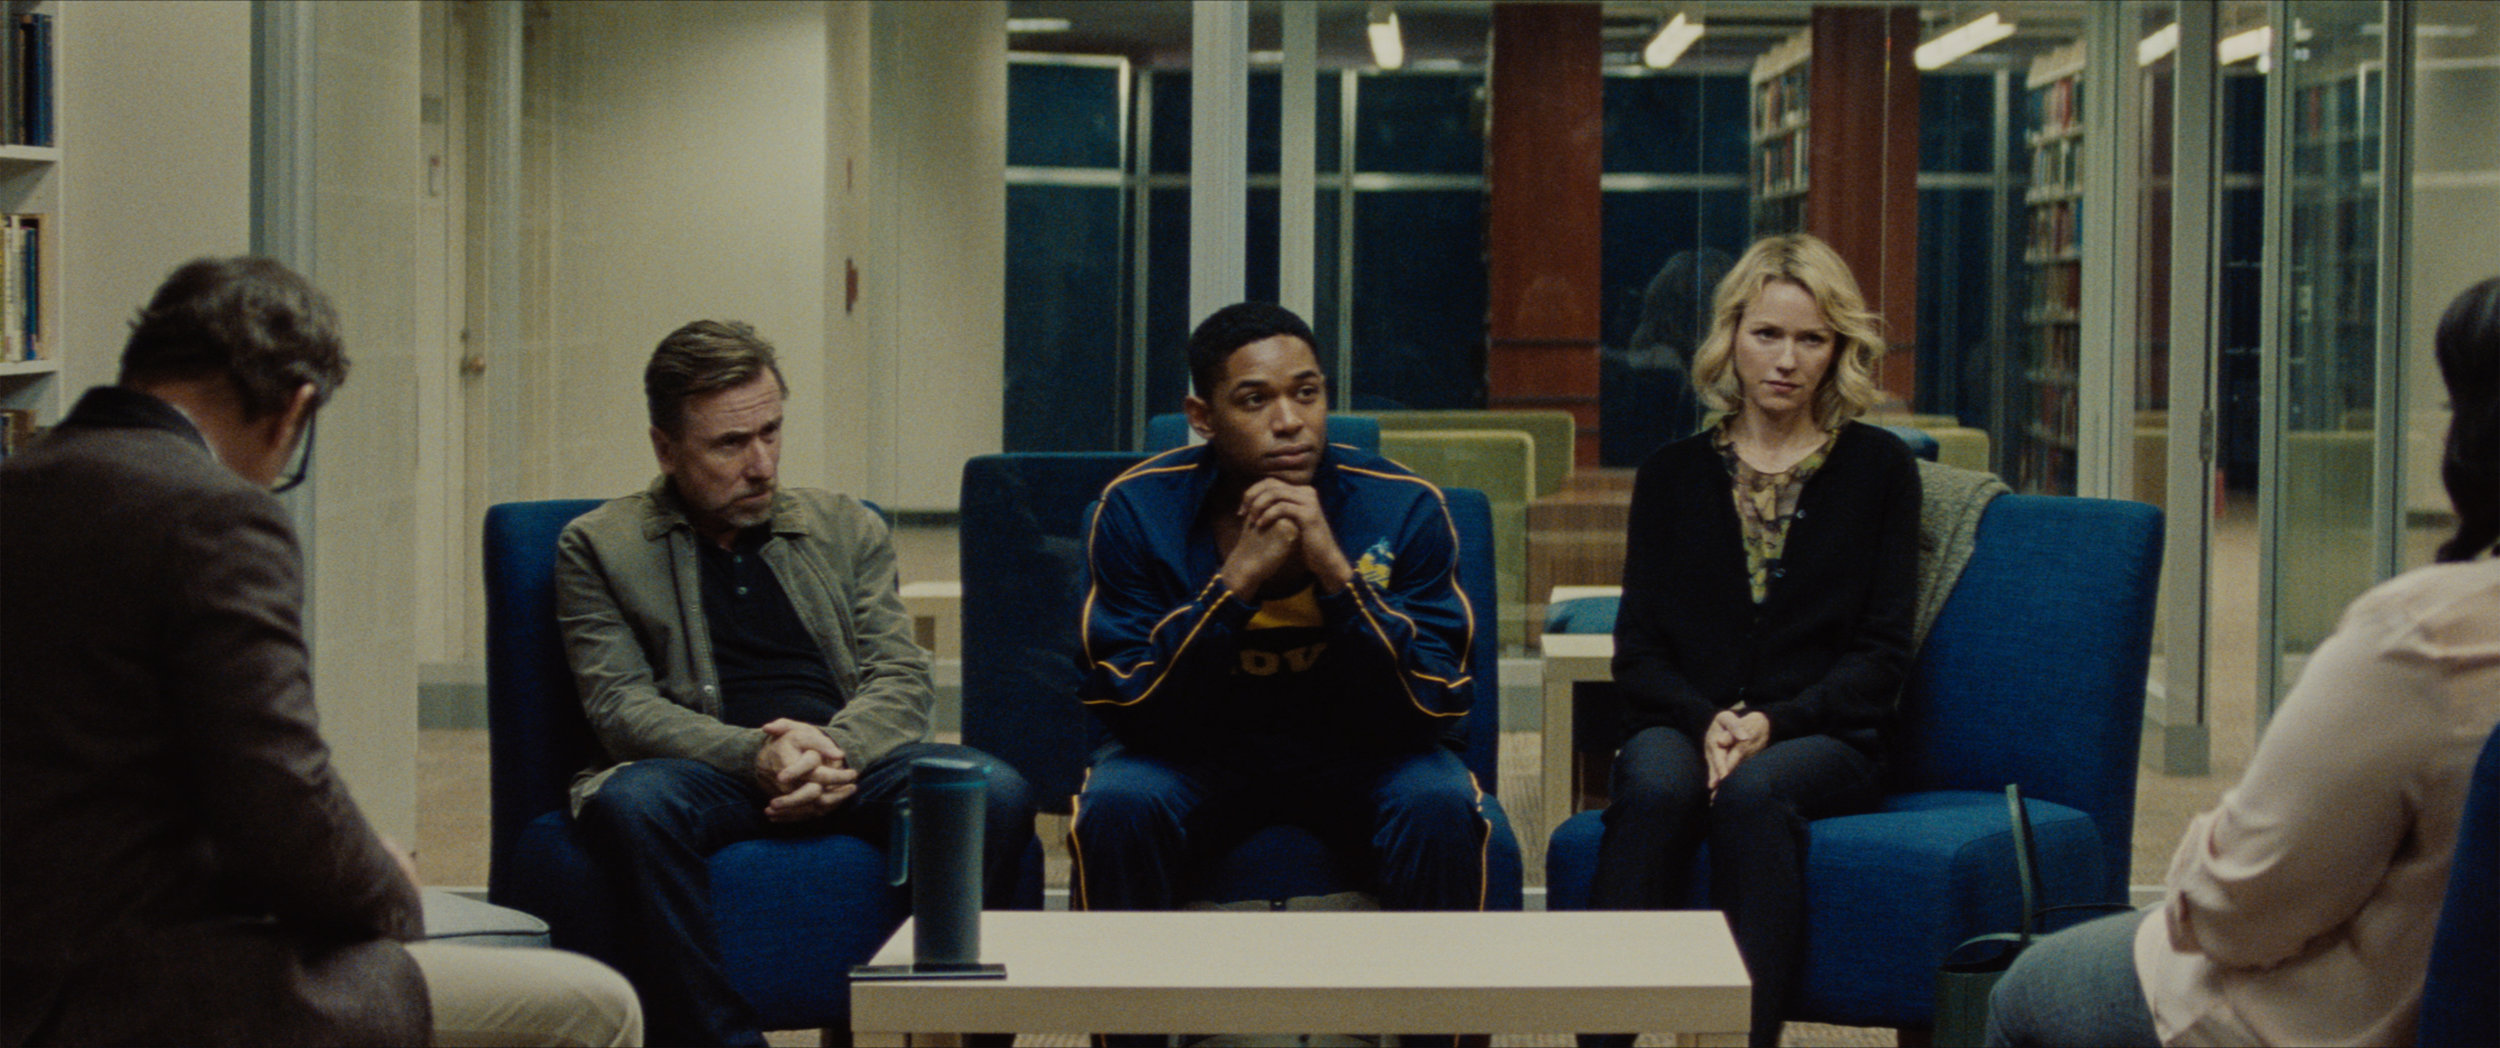 """An all-star athlete (Kelvin Harrison Jr., center) and his parents (Tim Roth and Naomi Watts) are called in after an alarming discovery is made about the student, in """"Luce,"""" directed by Julius Onah, an official selection in the U.S. Dramatic Competition of the 2019 Sundance Film Festival. (Photo by Larkin Seiple, courtesy Sundance Institute)"""